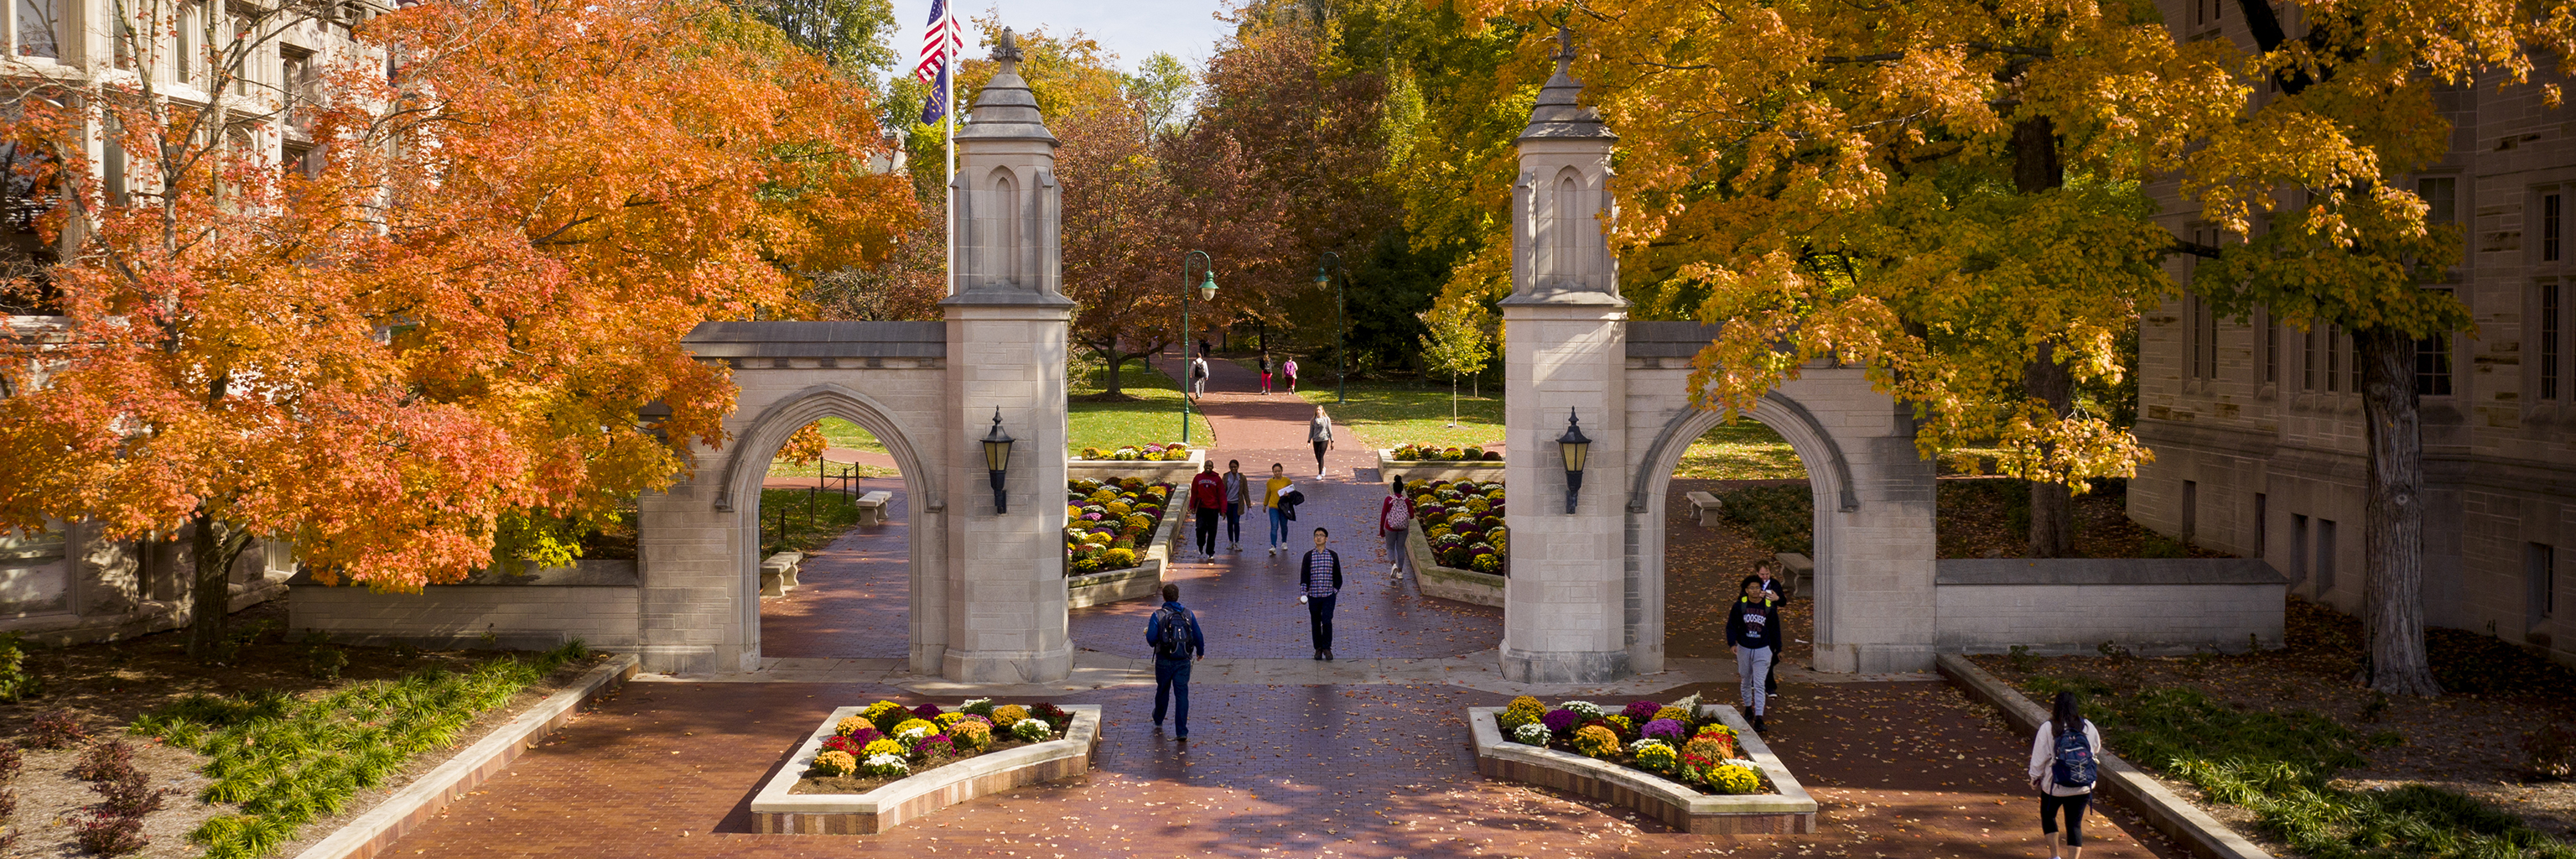 Students walk through the Sample Gates in the fall on the Indiana University Bloomington campus.